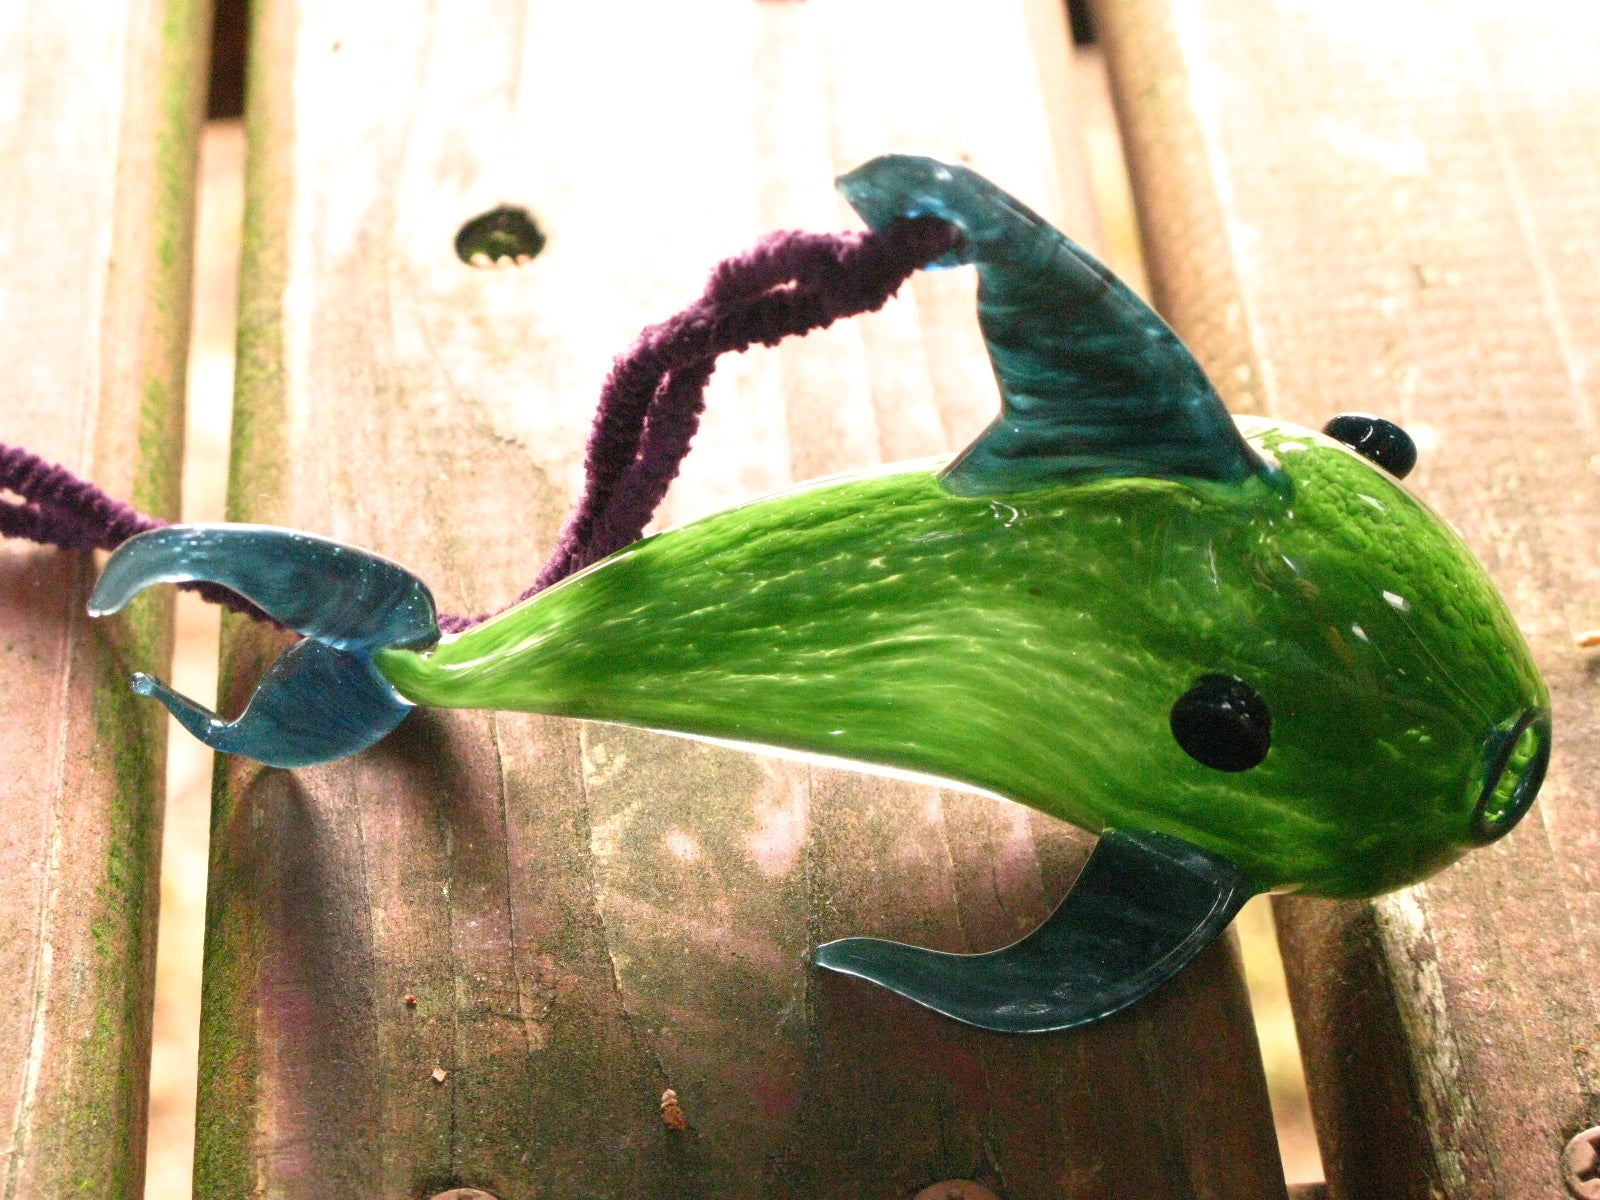 tdogharty — bright green fish ornament, Reel Combo